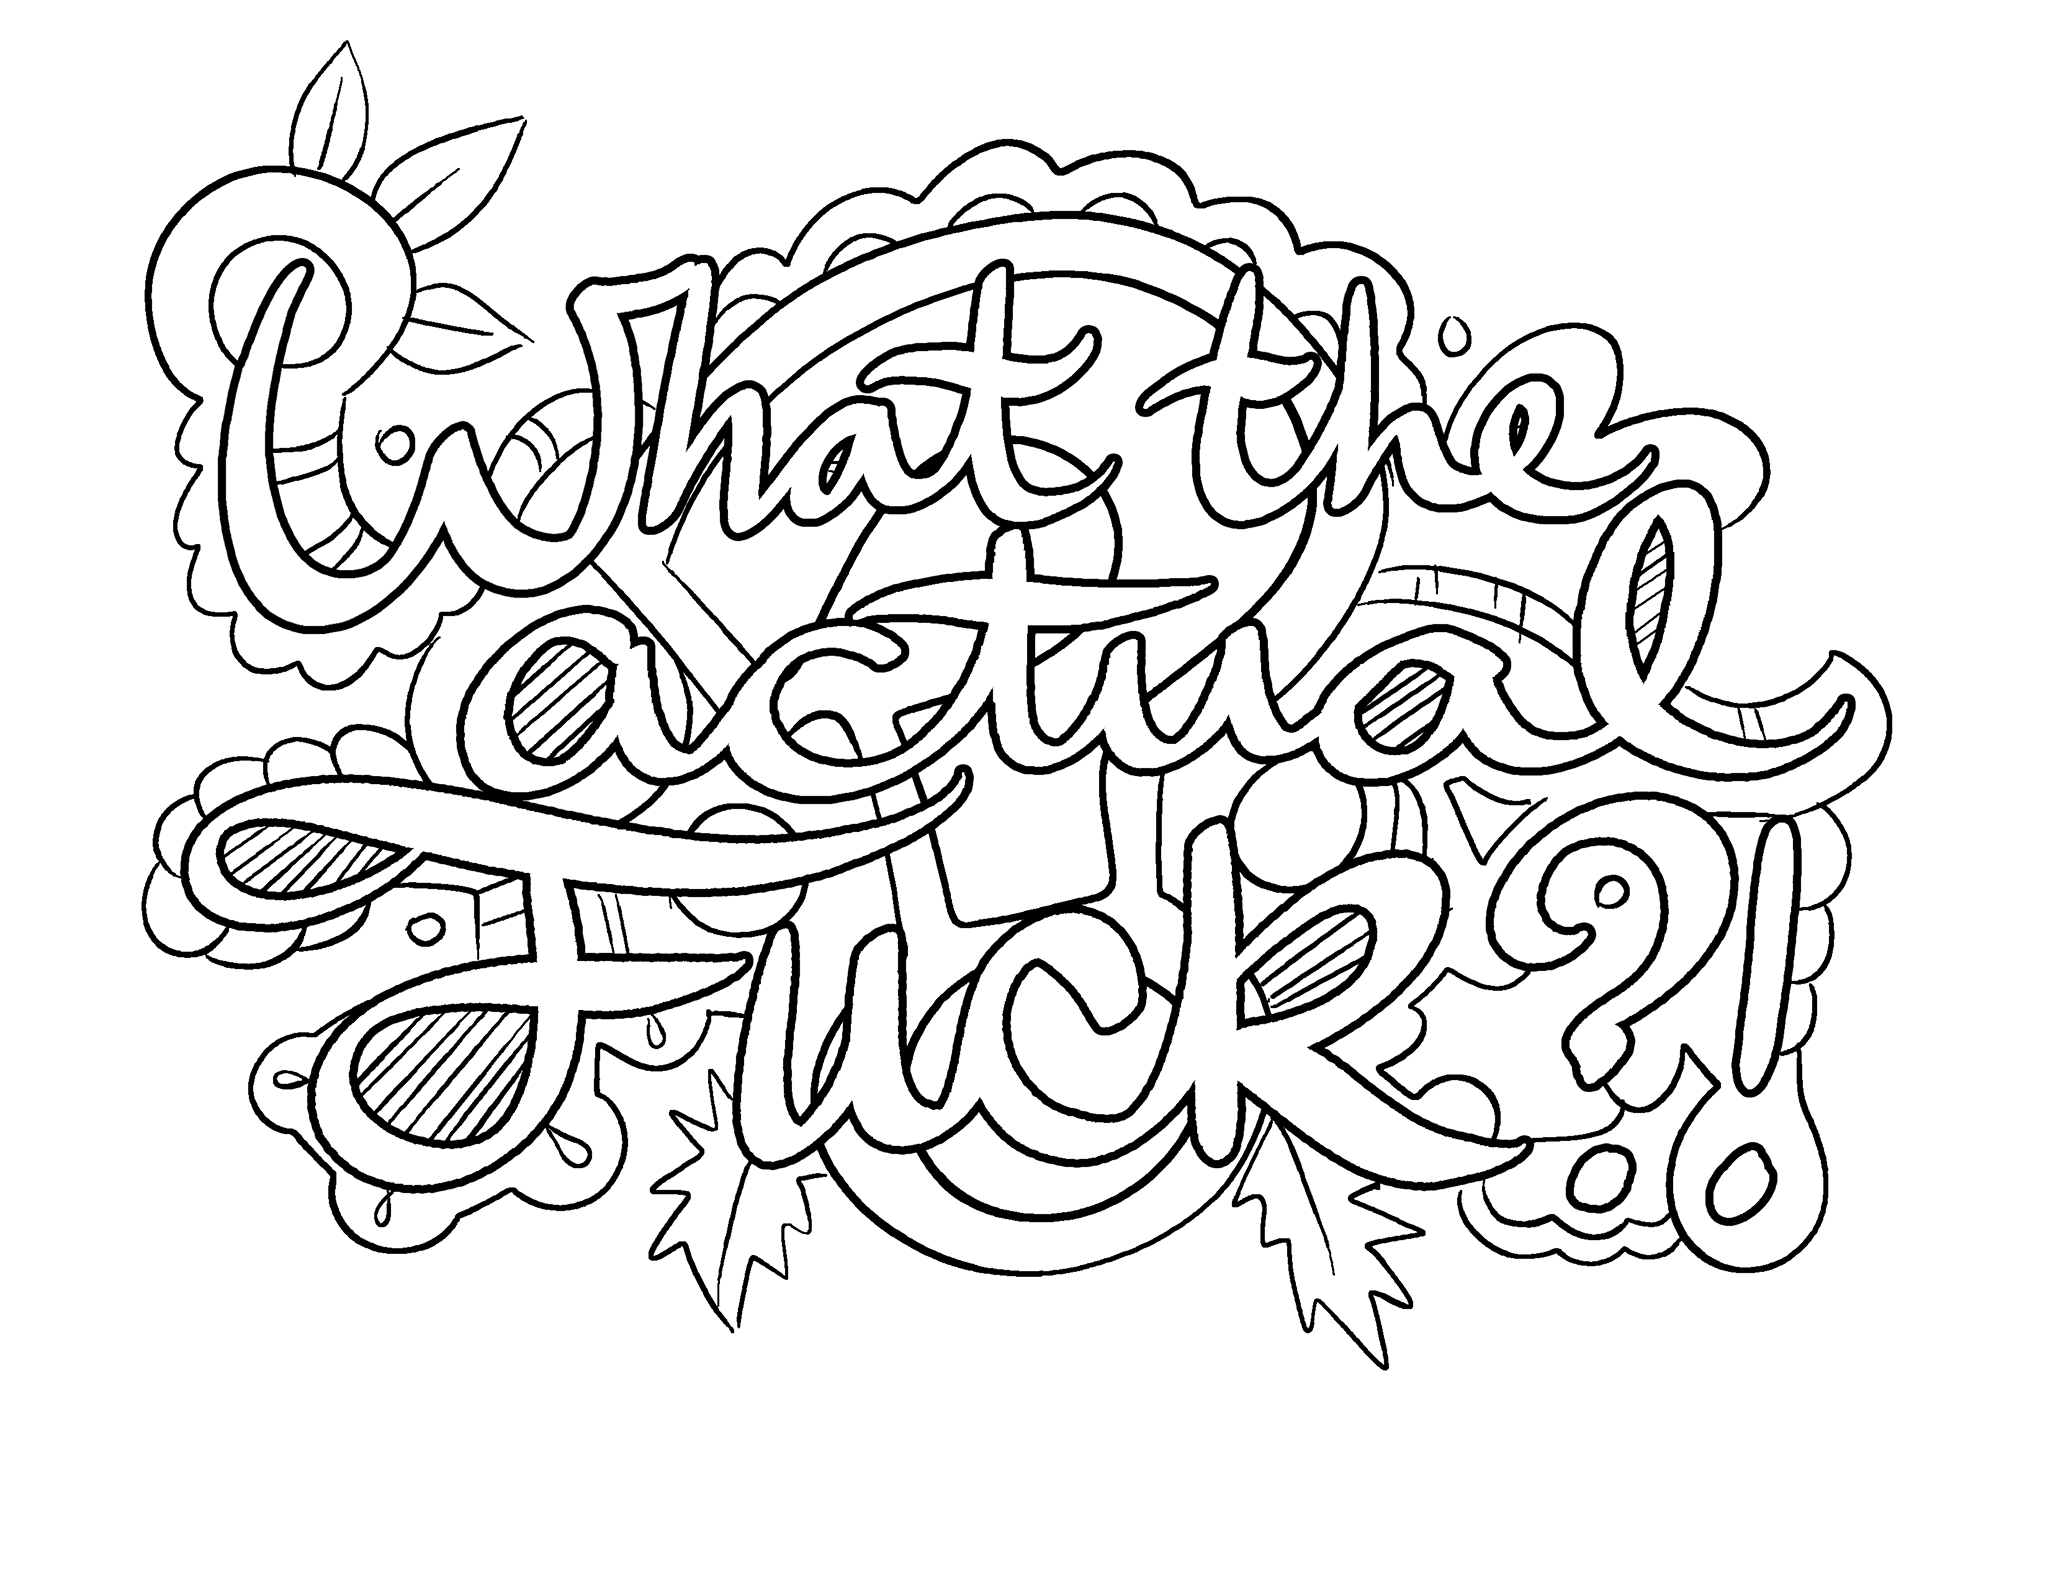 Bad word coloring pages - Find This Pin And More On Coloring Pages